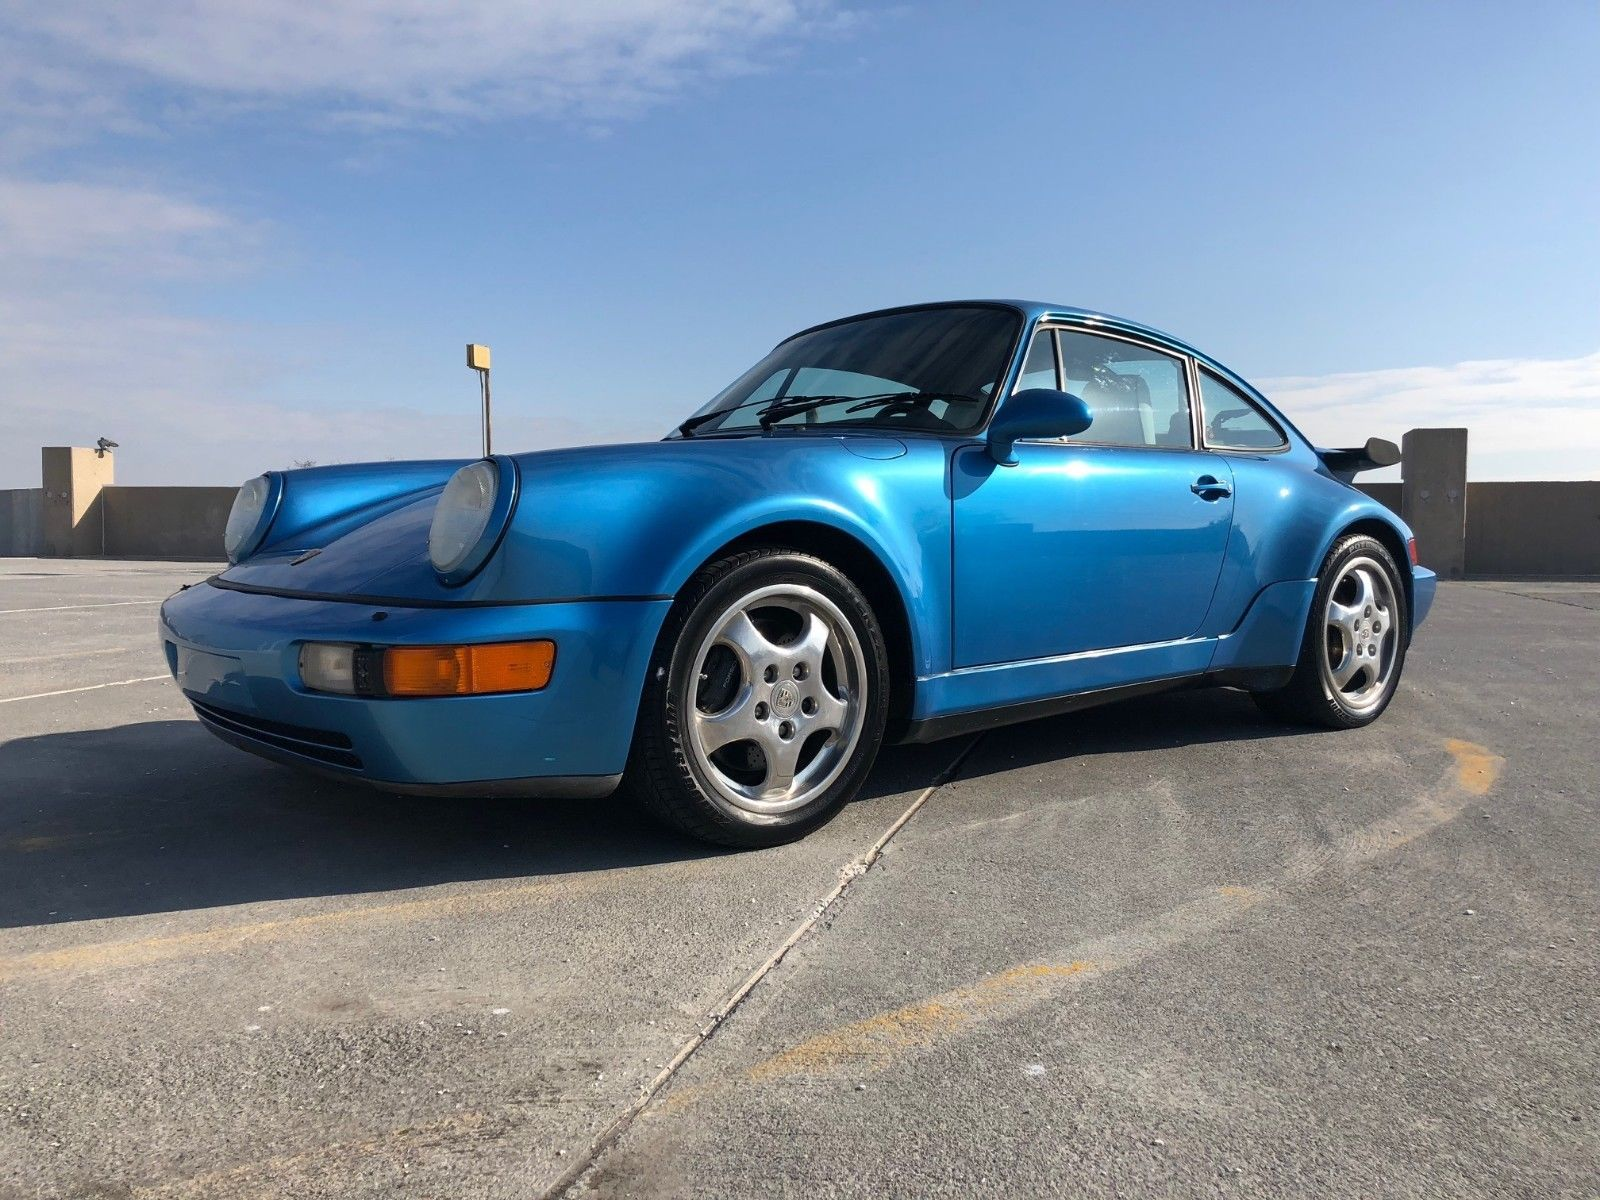 Blue Porsche 964 Turbo on a parking deck for sale